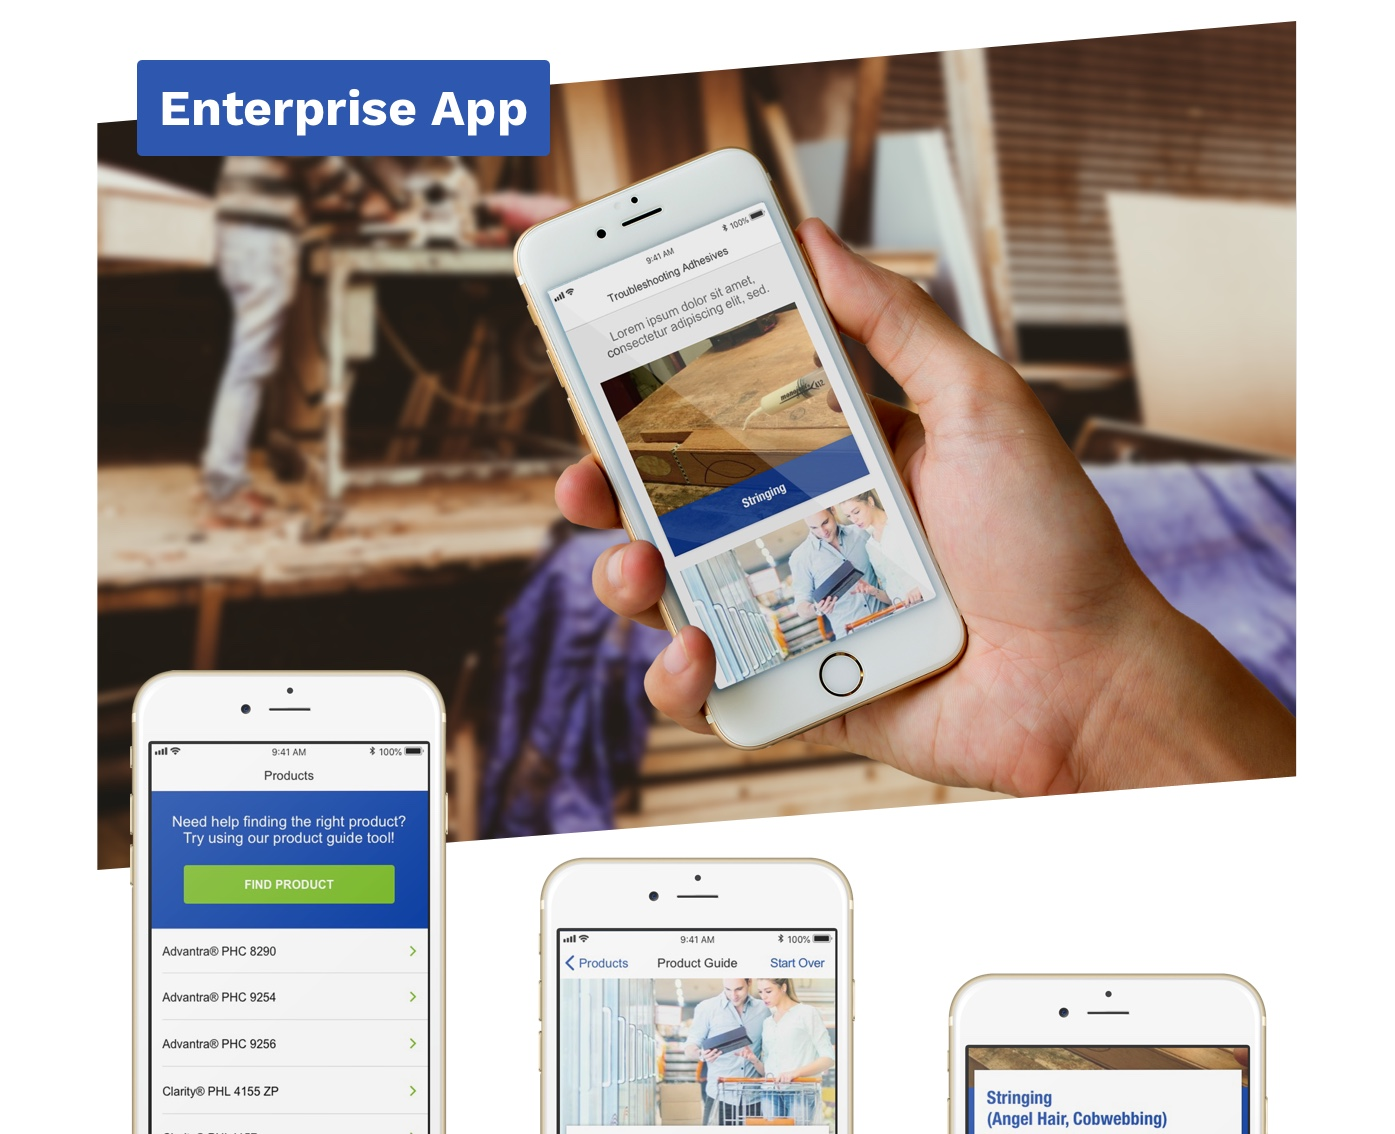 H.B. Fuller enterprise app in use.